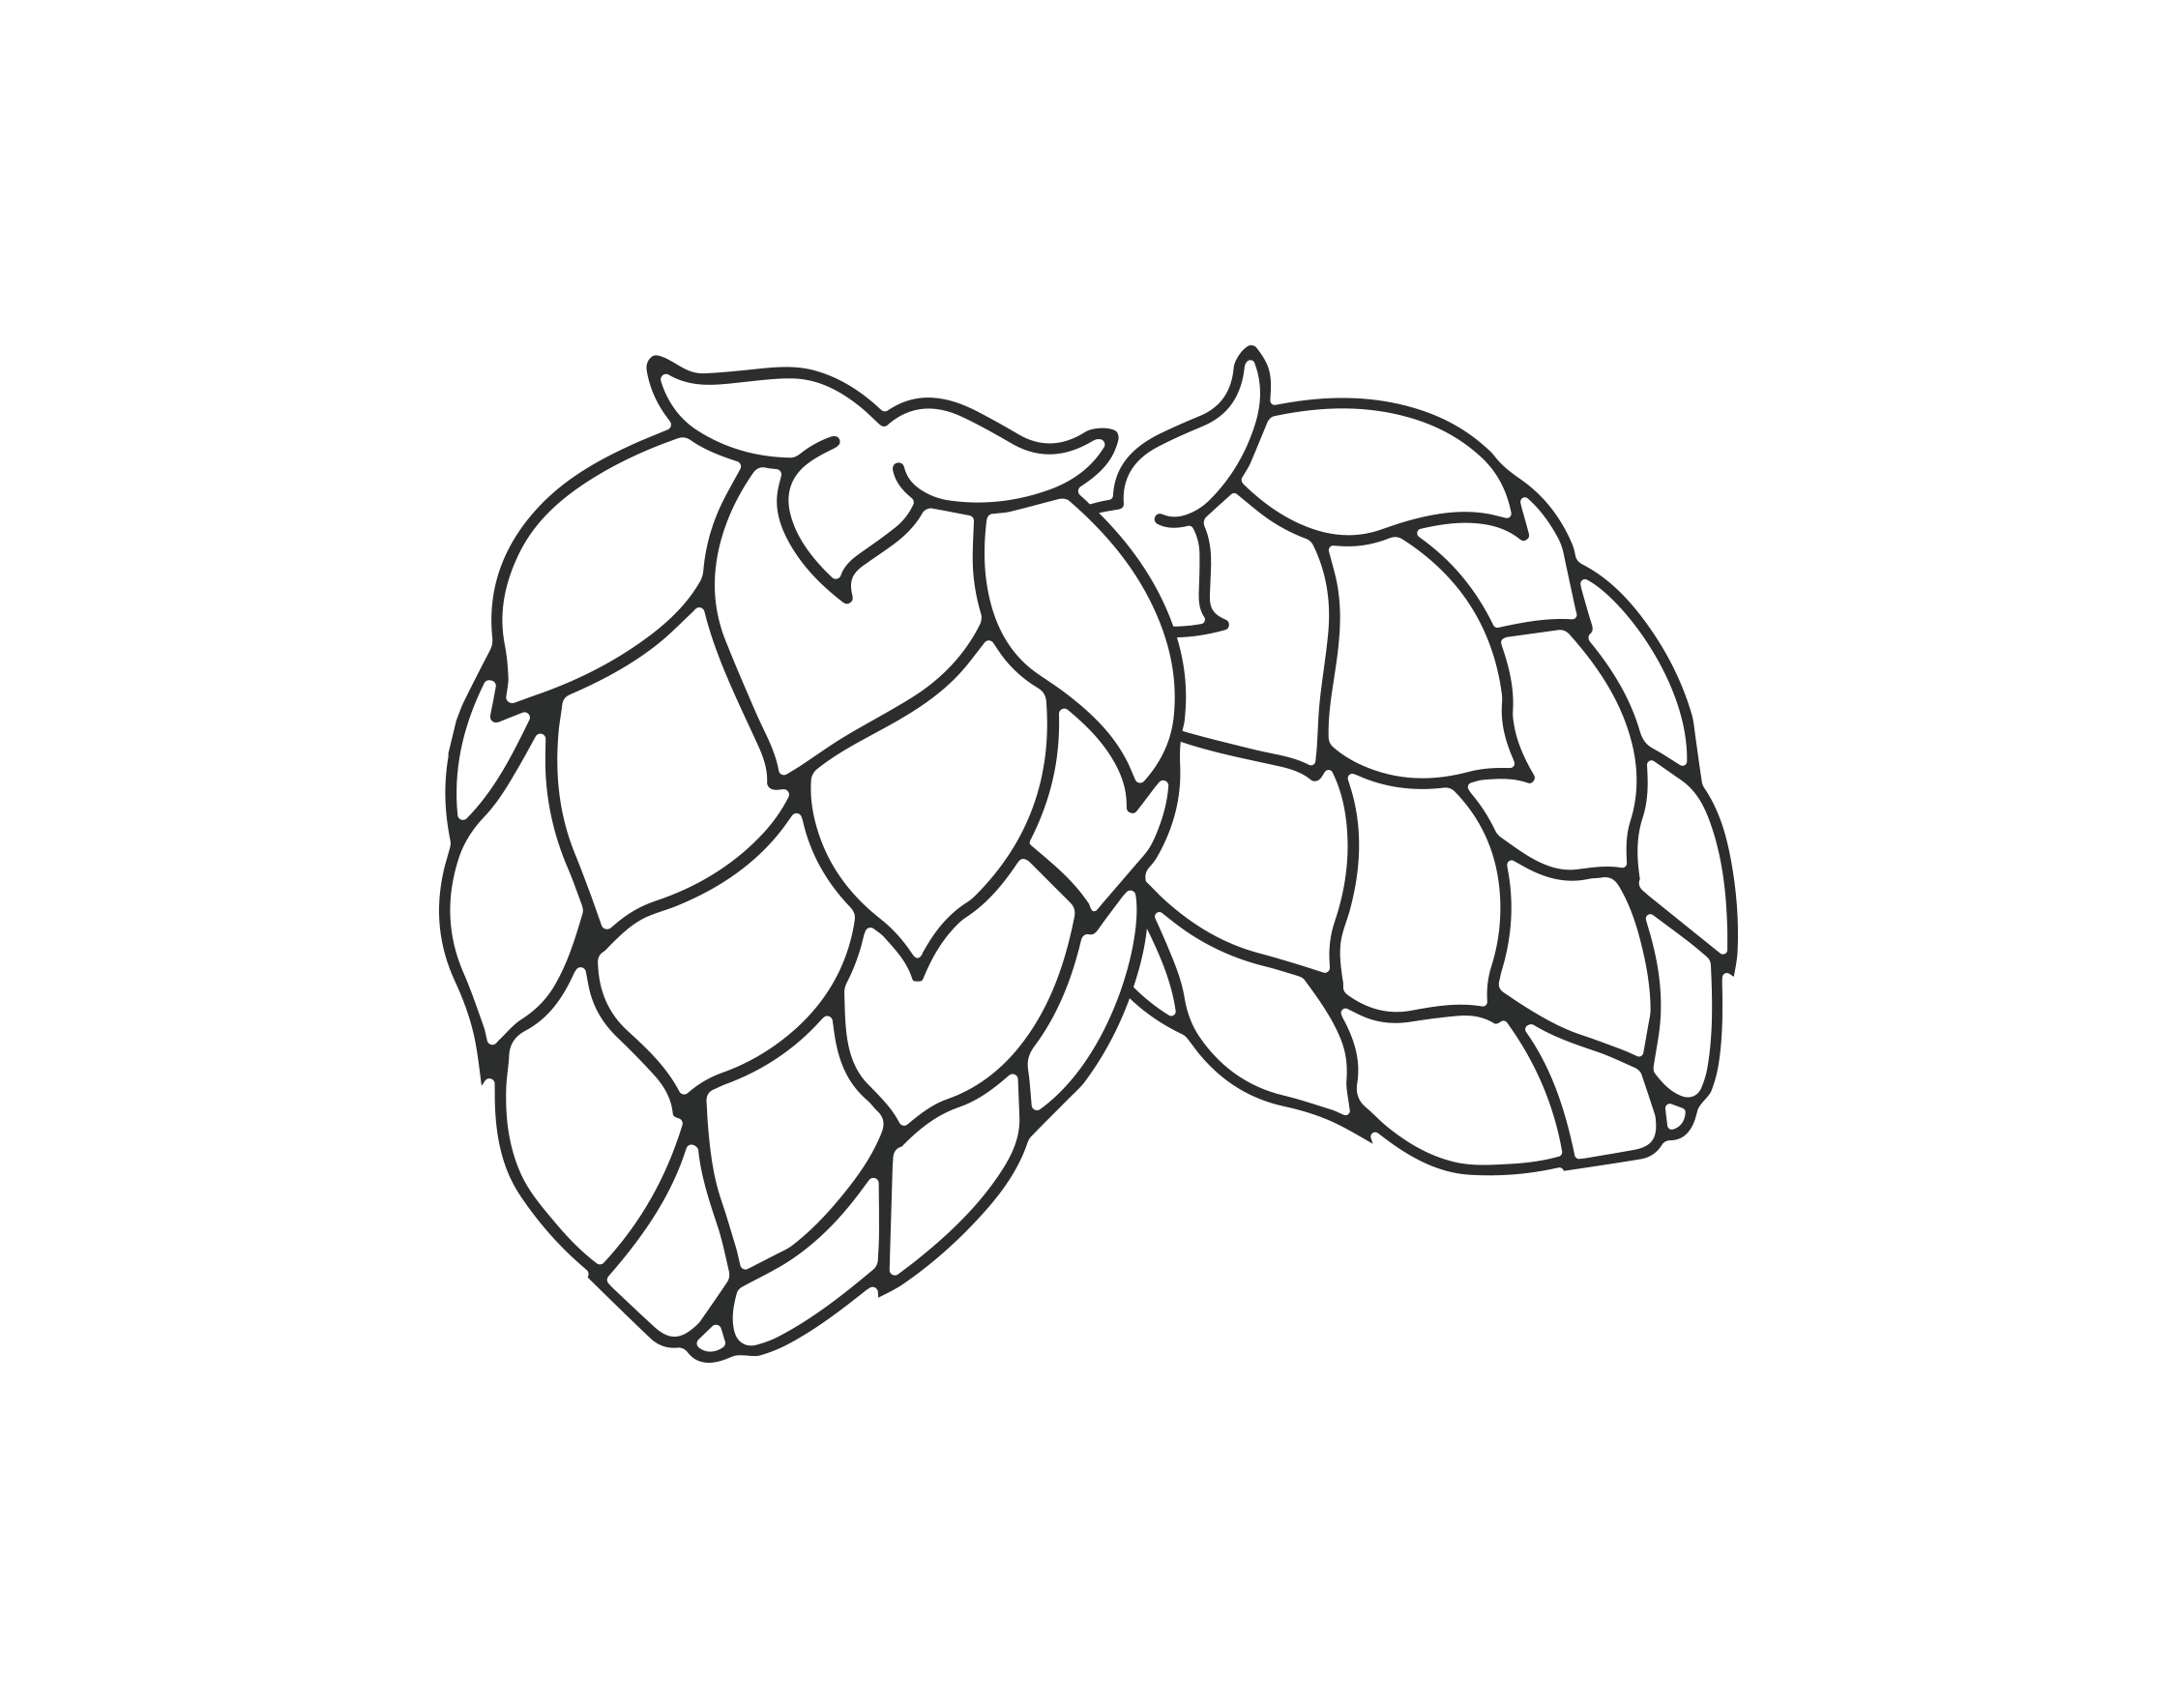 hops-test-black.png